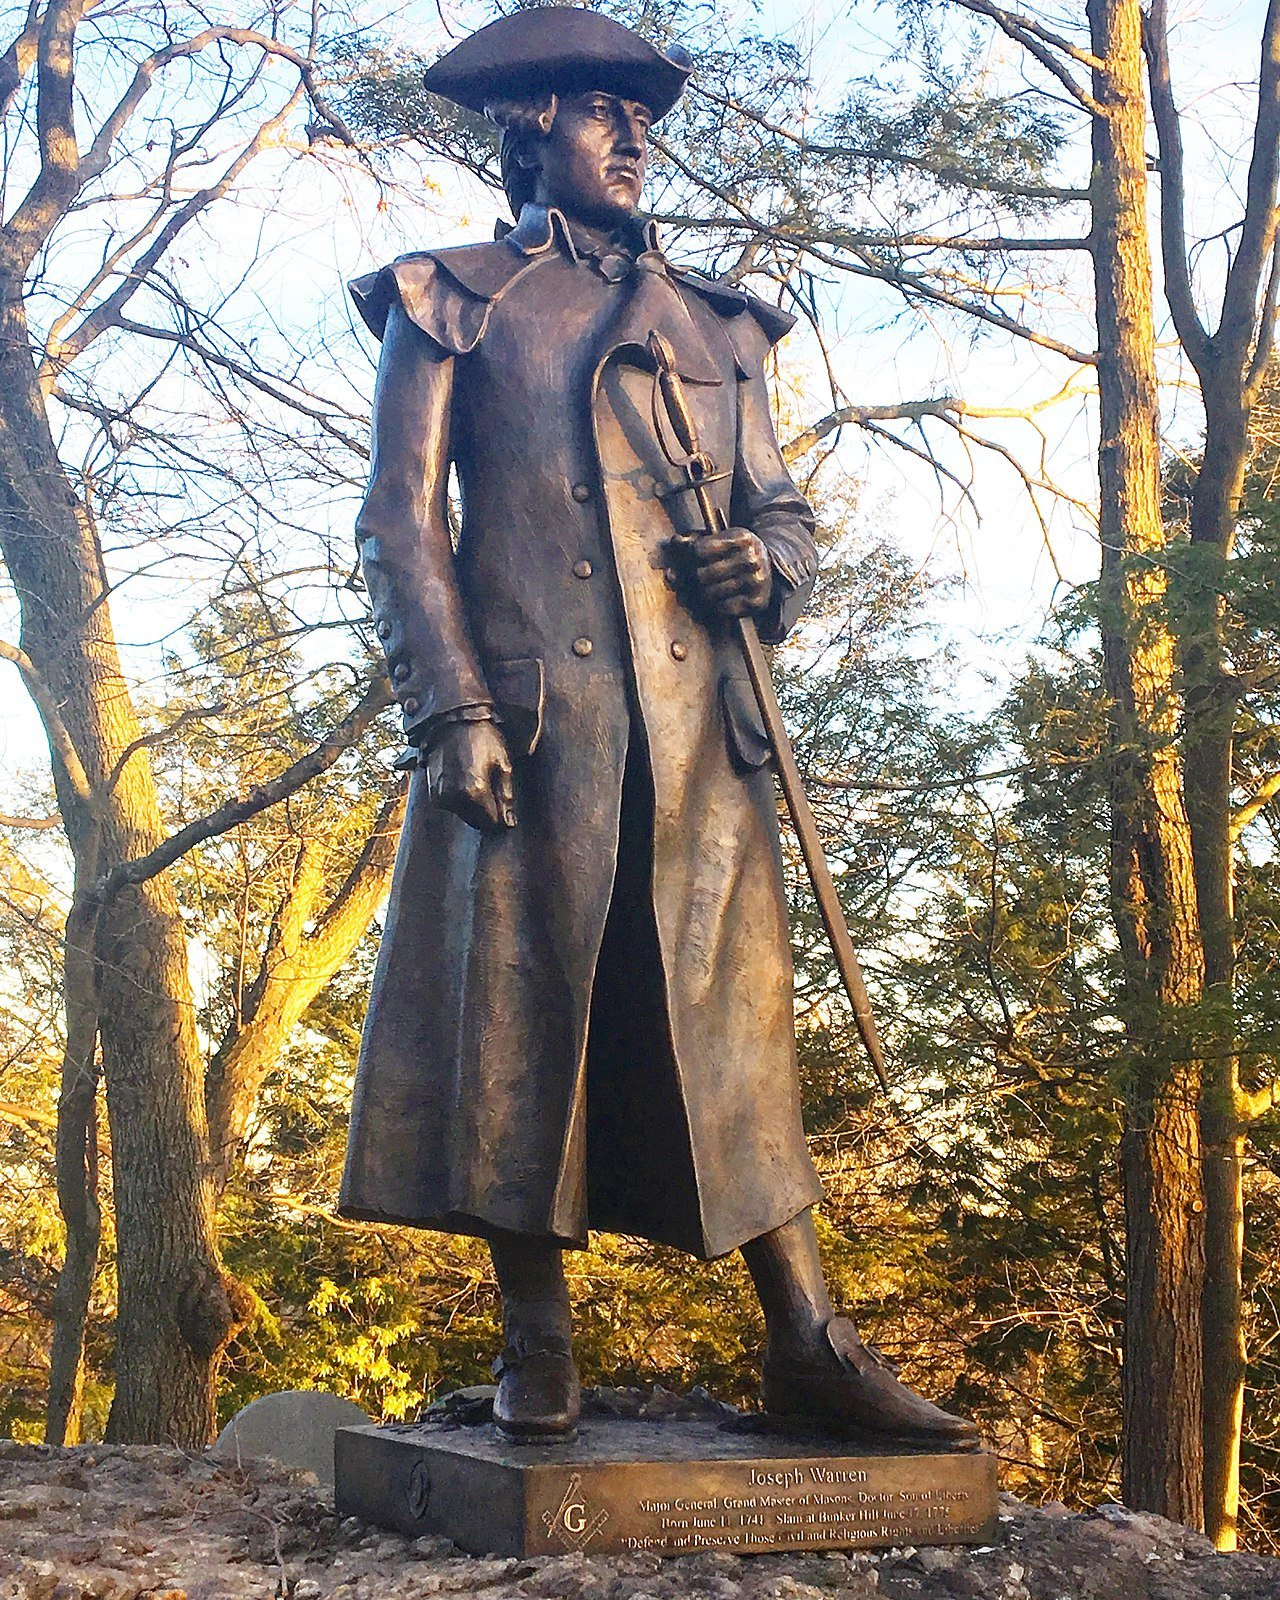 The Joseph Warren statue unveiled in 2016 at Forest Hill Cemetery is based on Bartlett's 1904 design.